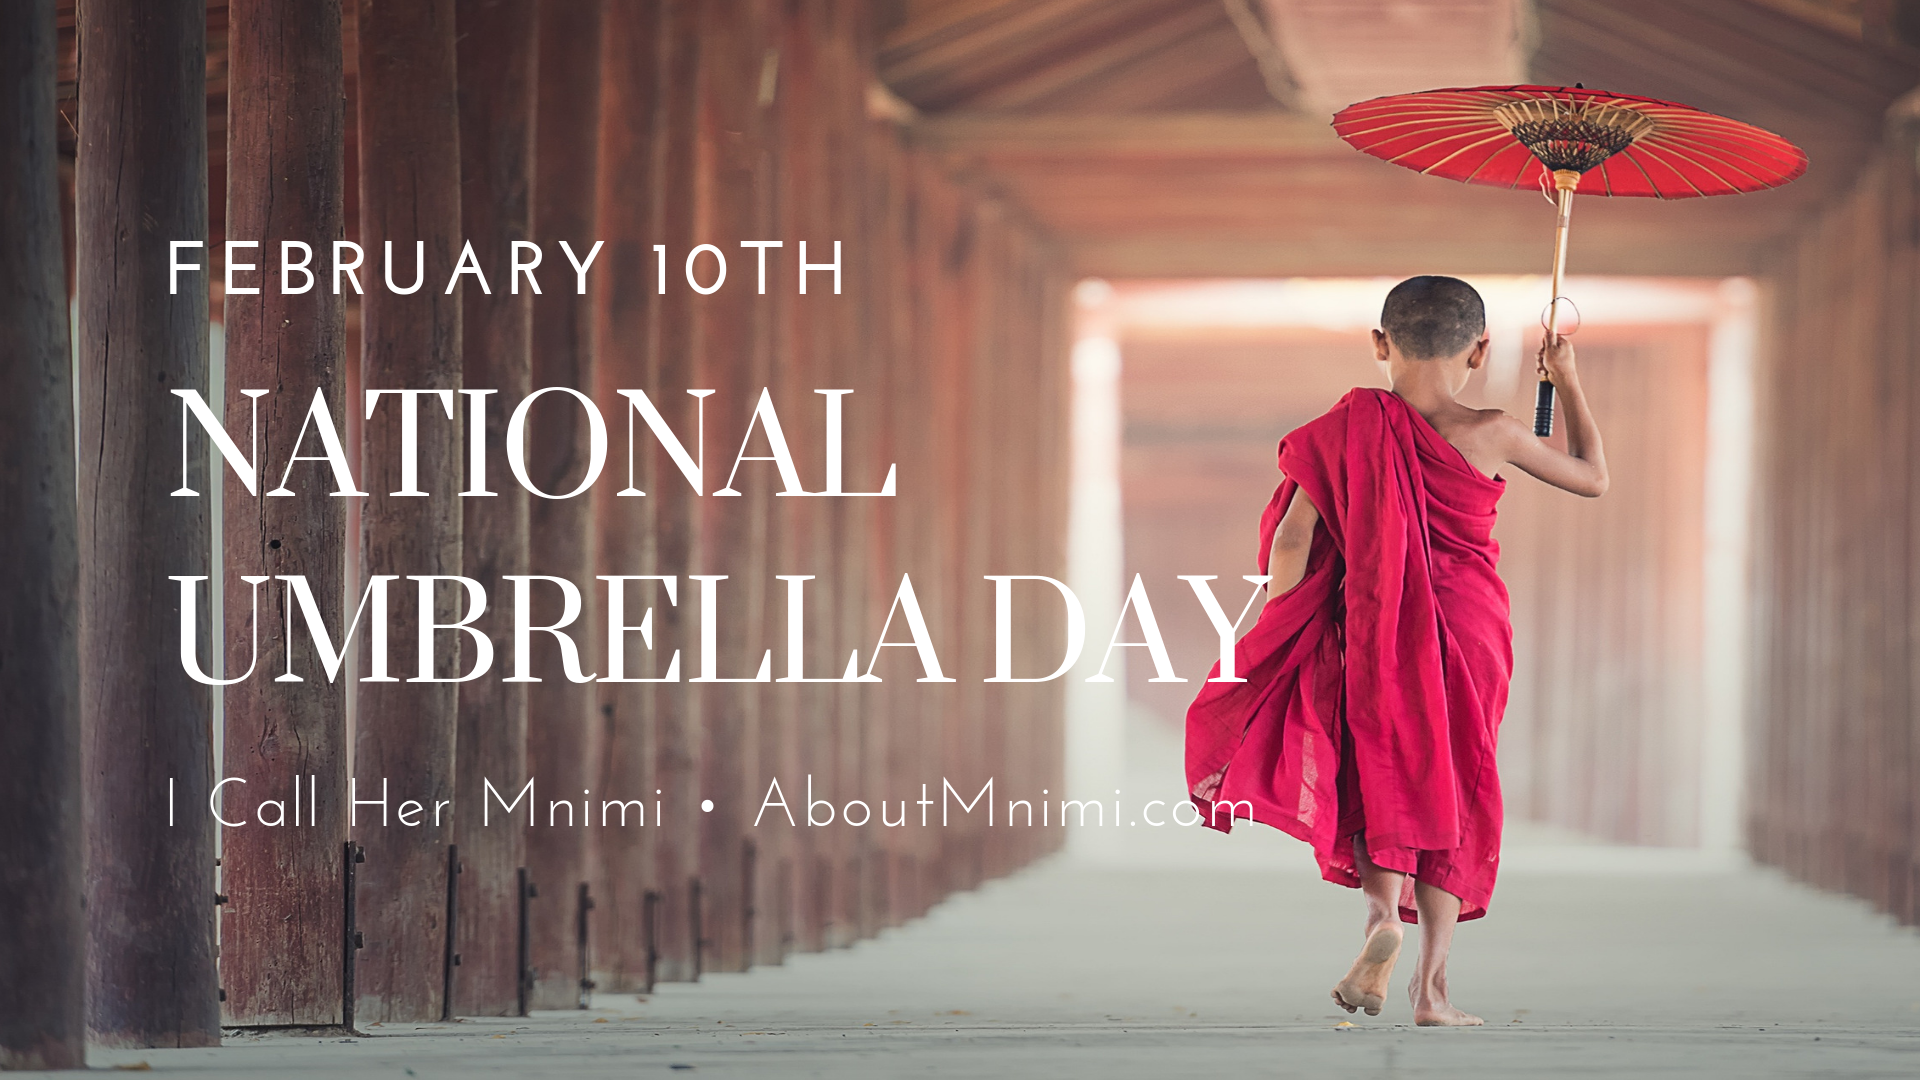 A little monk boy walking away as he carries a red umbrella that matches his red robe